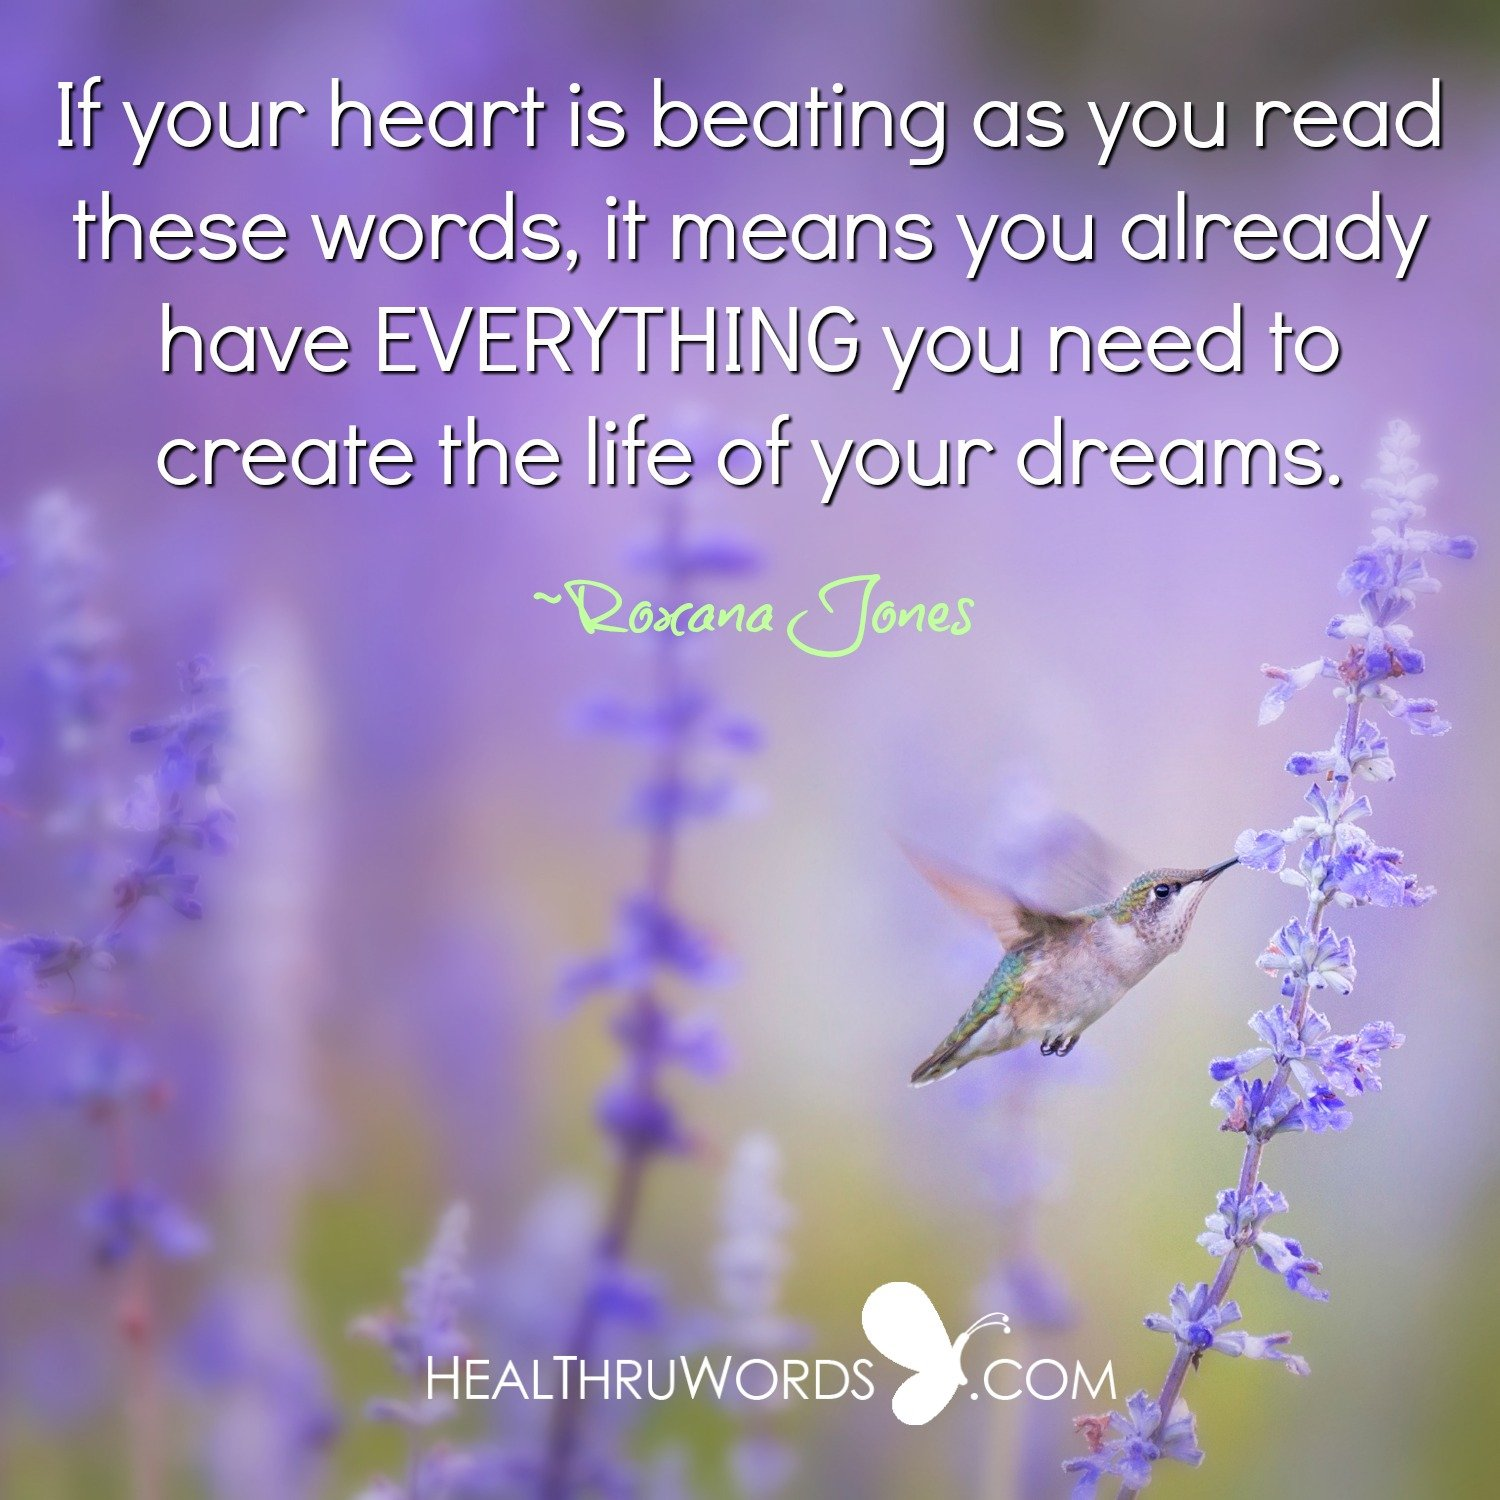 Inspirational Image: Does your Heart Beat?